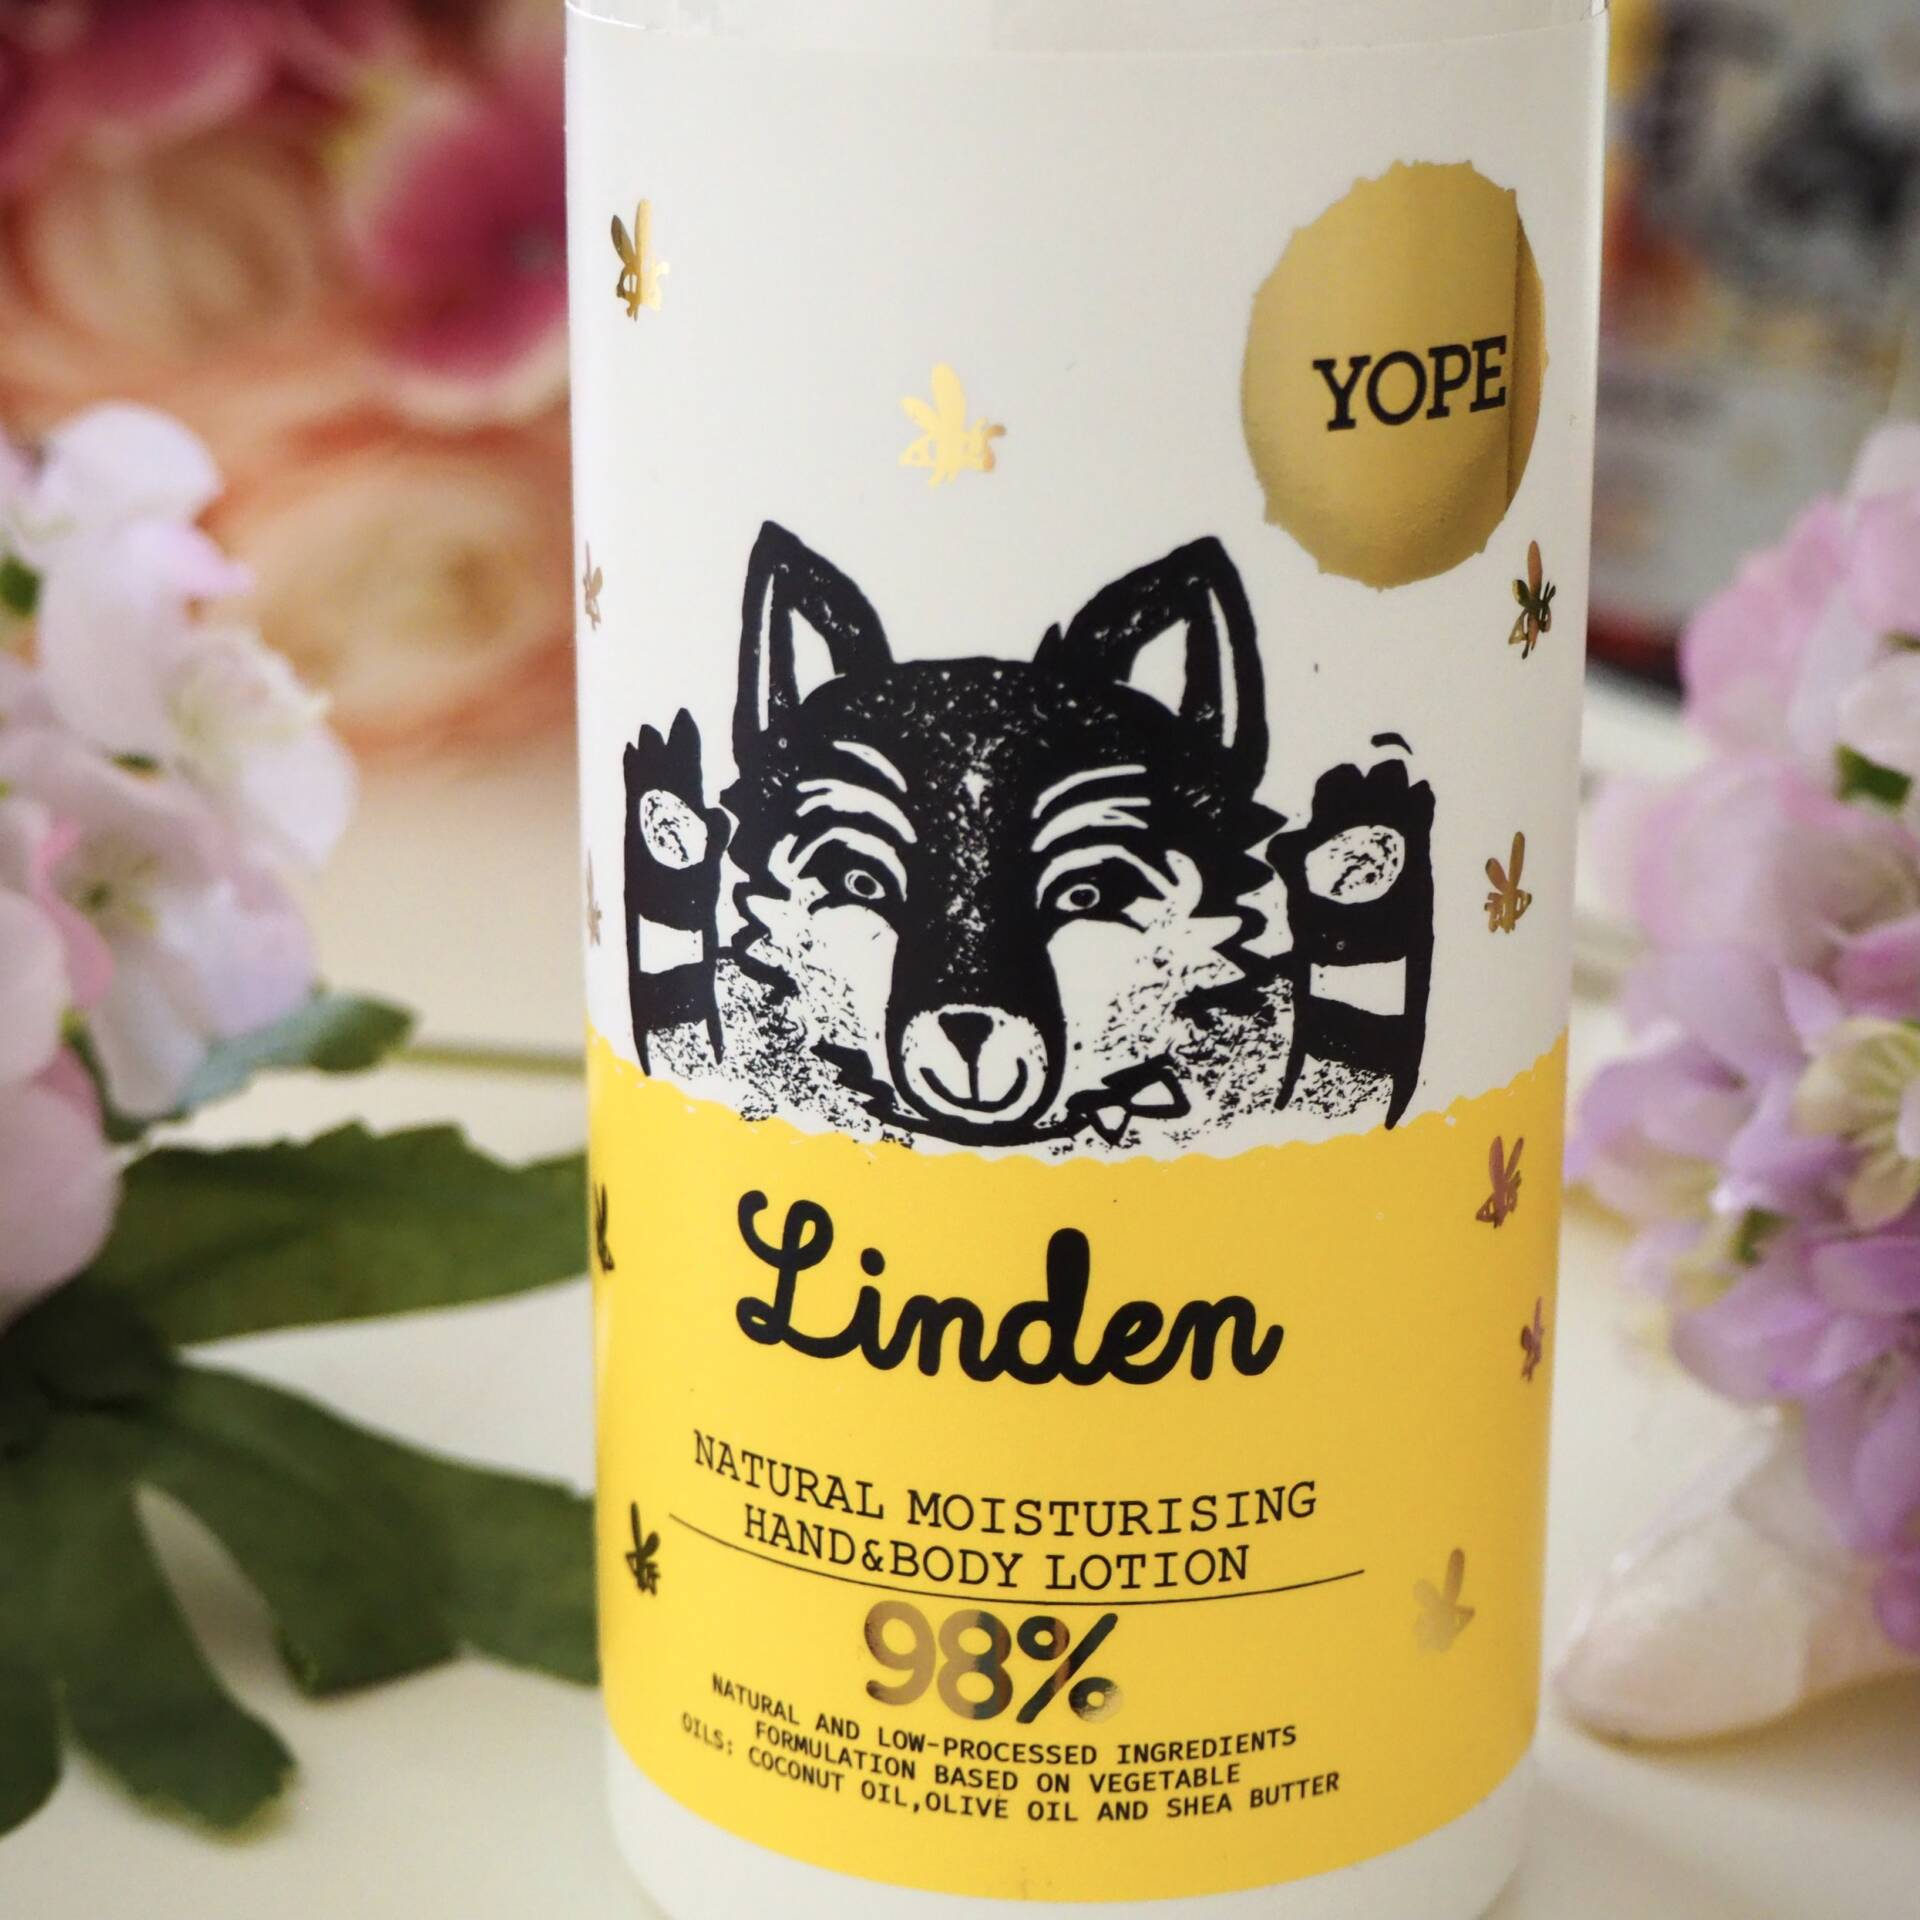 yope-linden-natural-hand-and-body-lotion